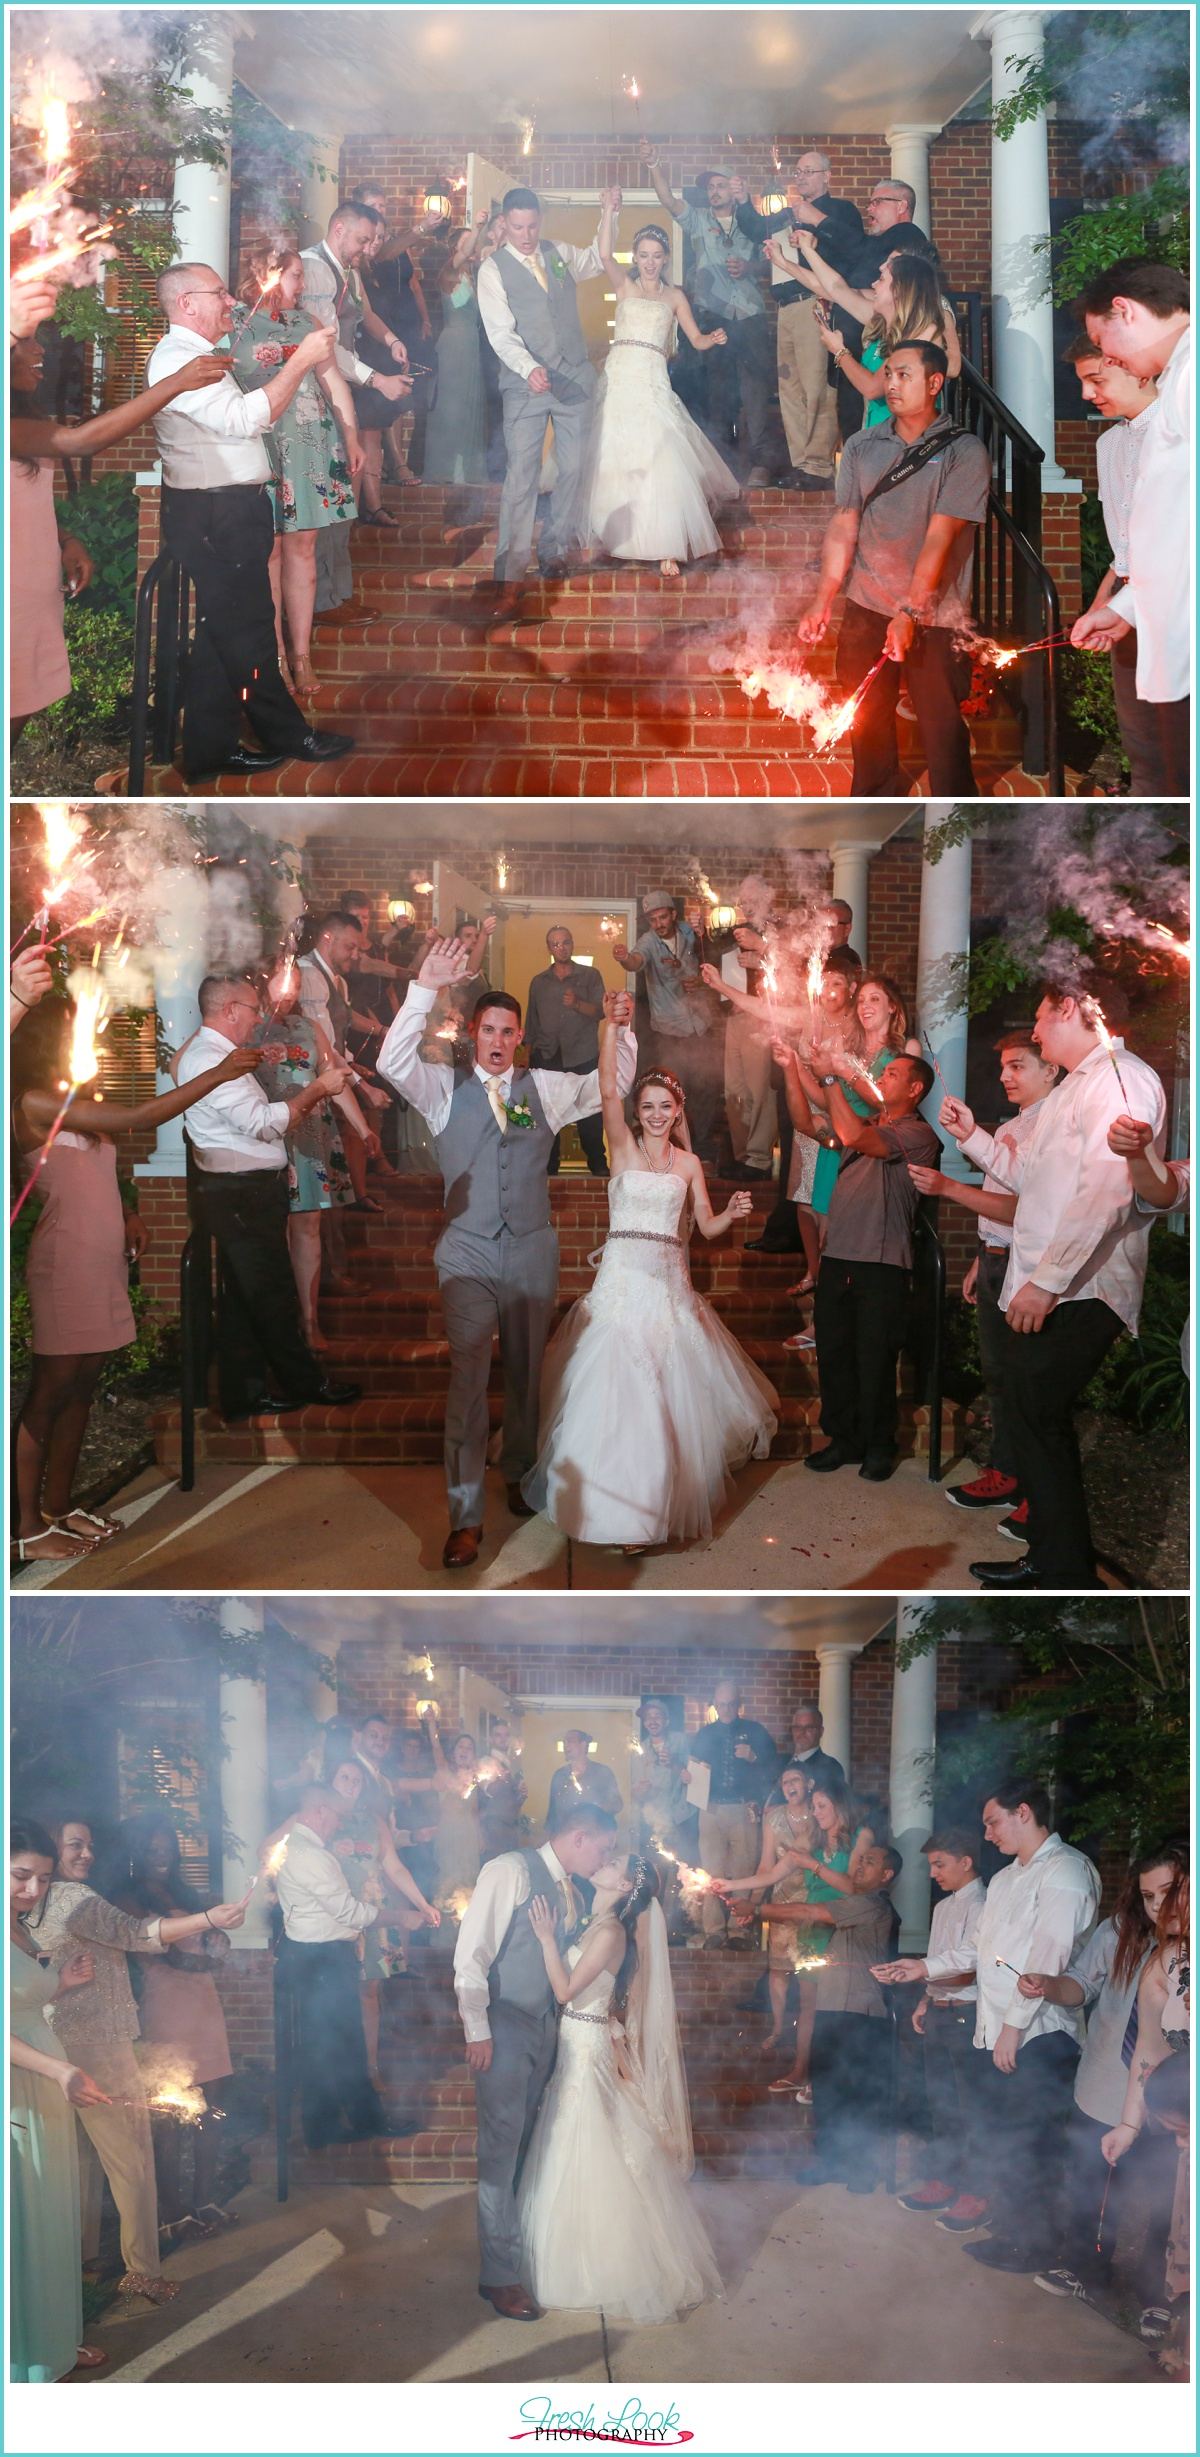 sparkler exit from the wedding